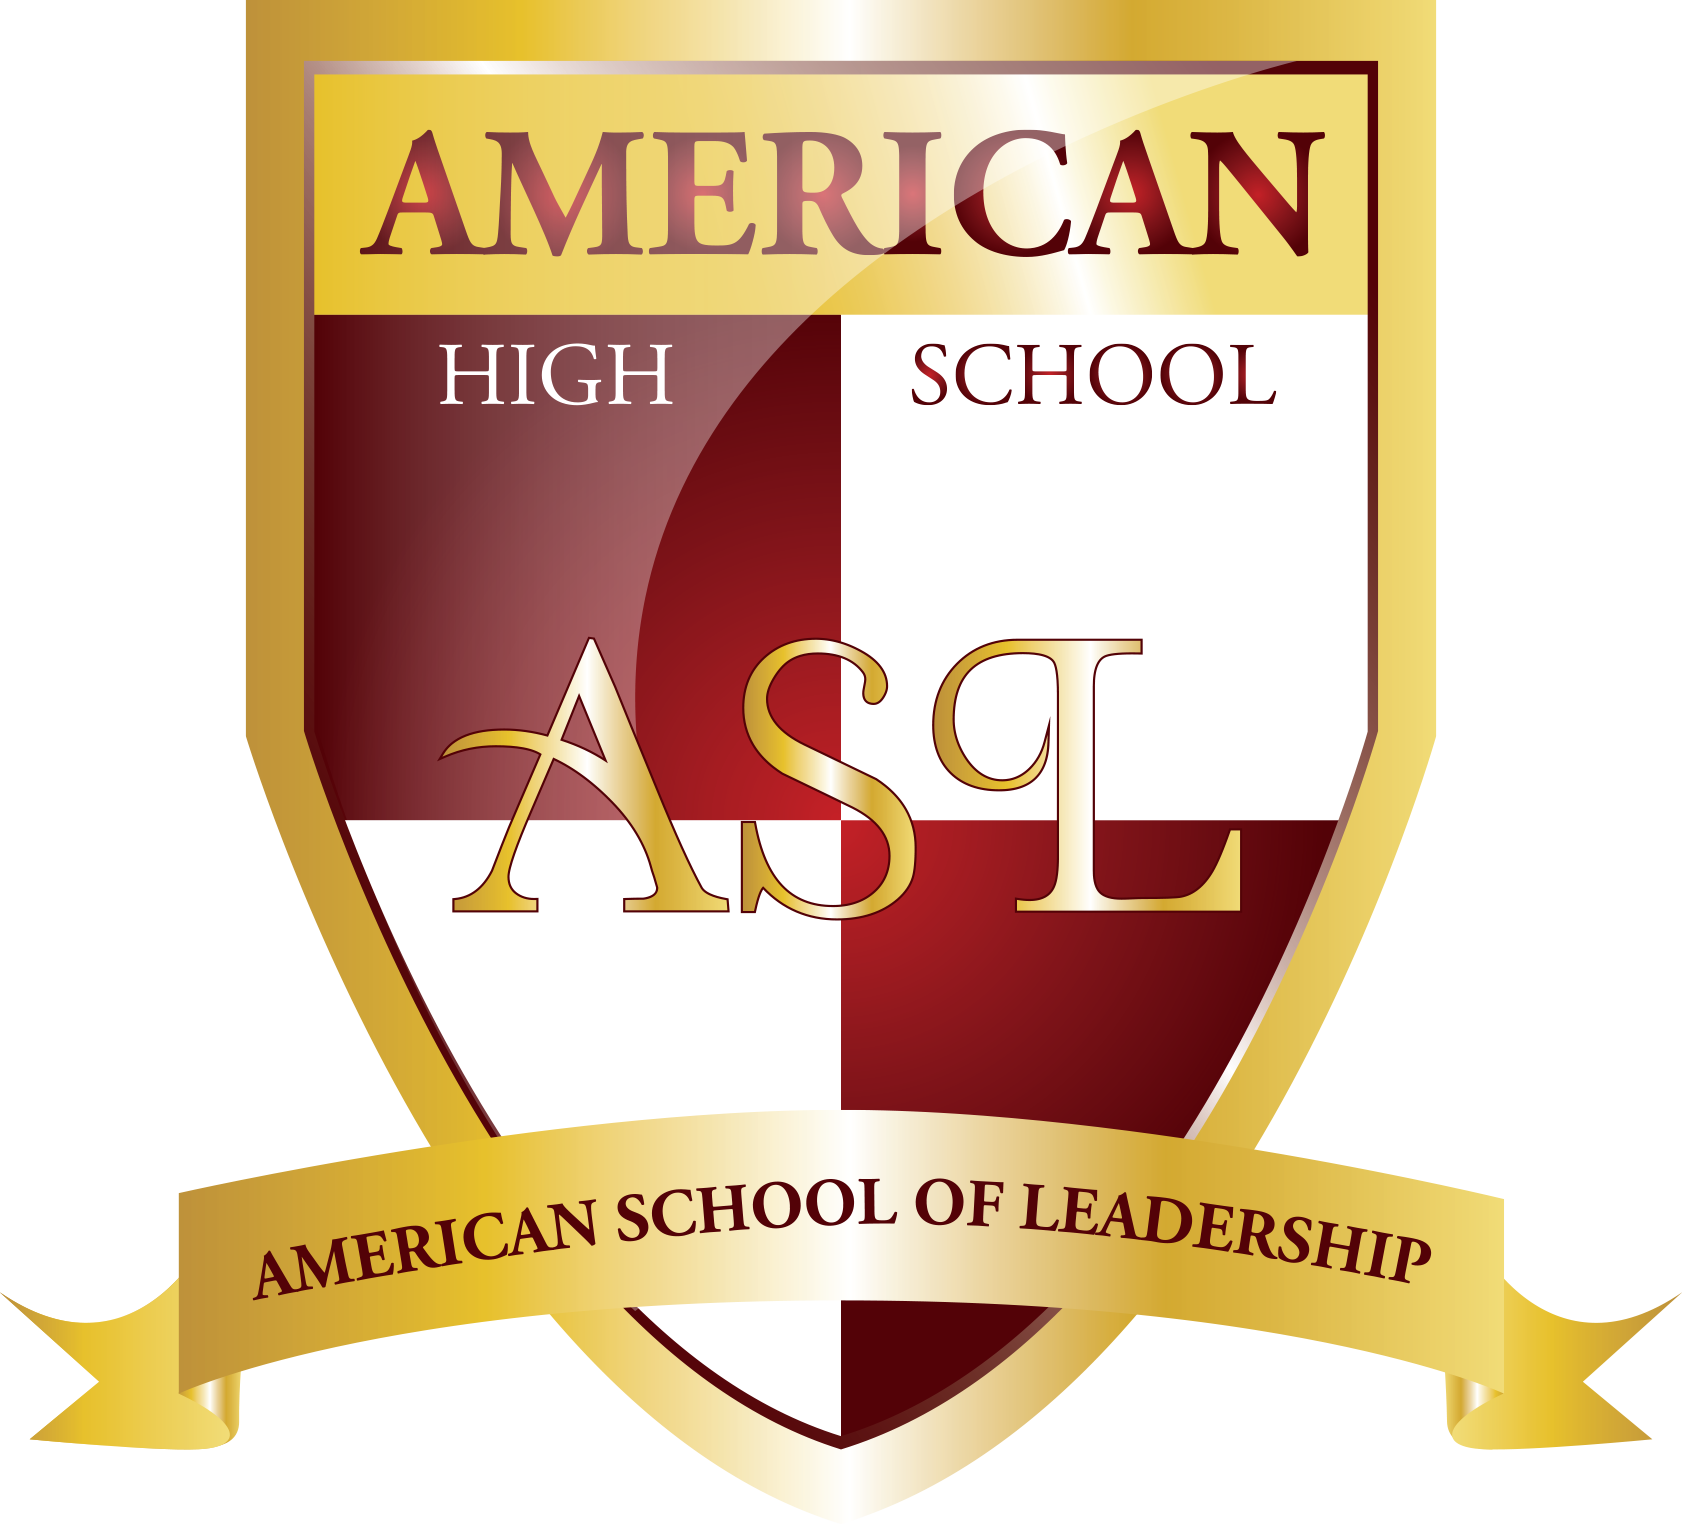 American School of Leadership